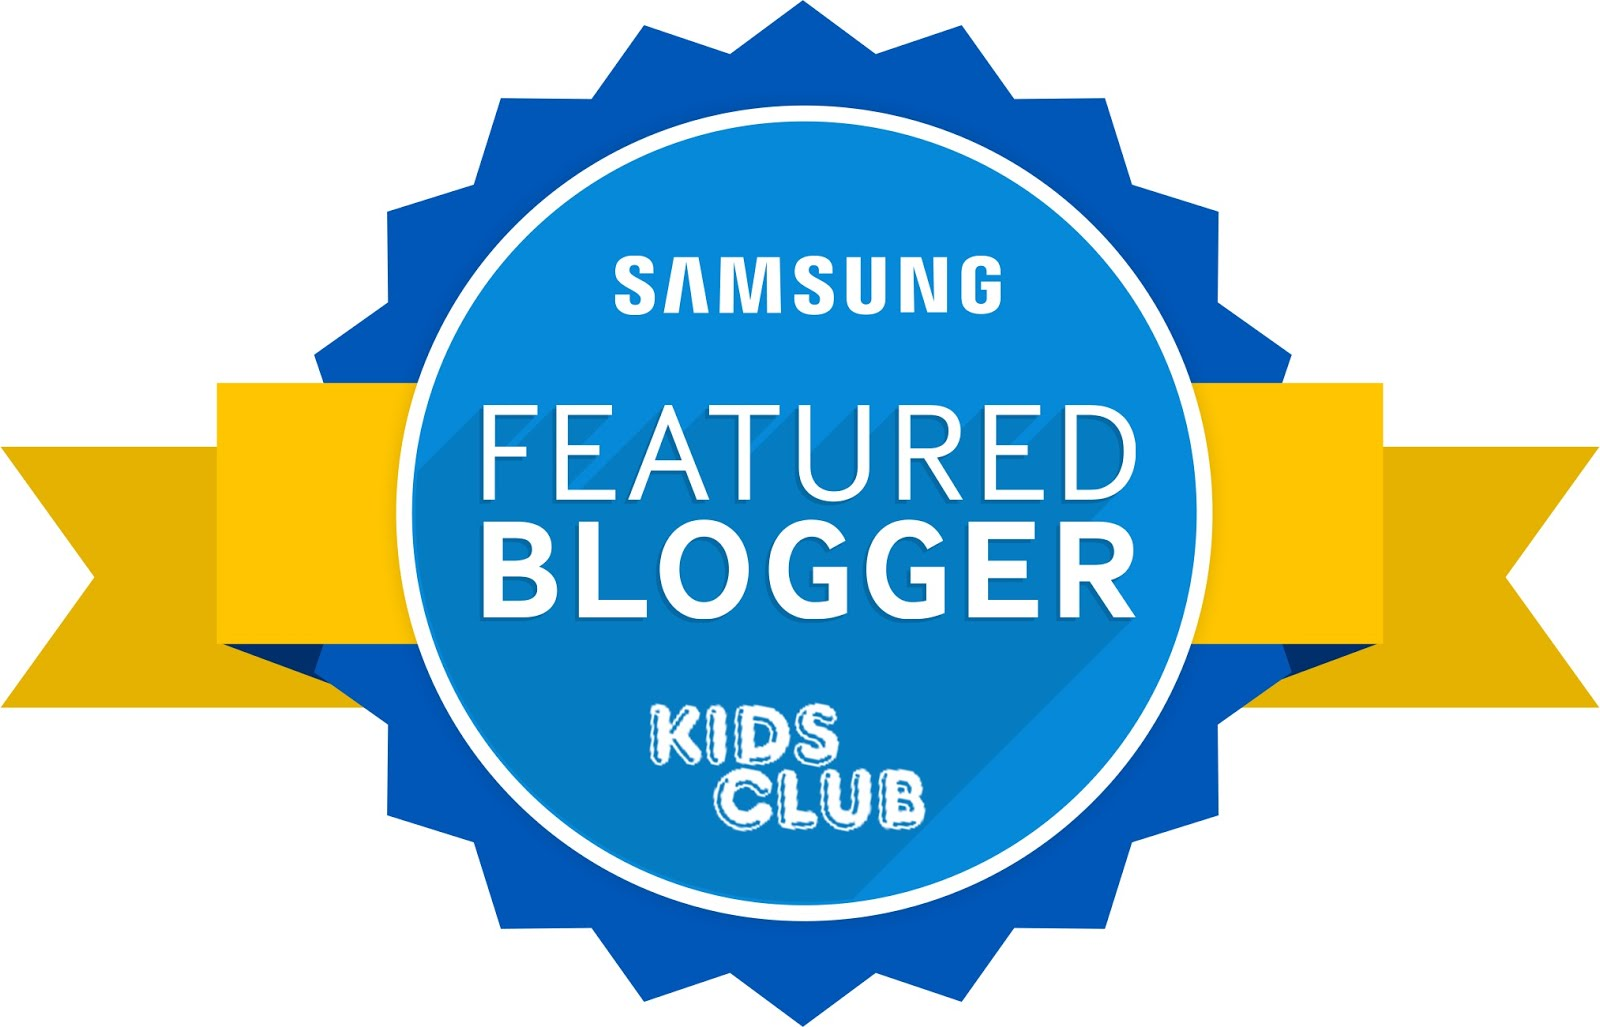 Samsung Kids club